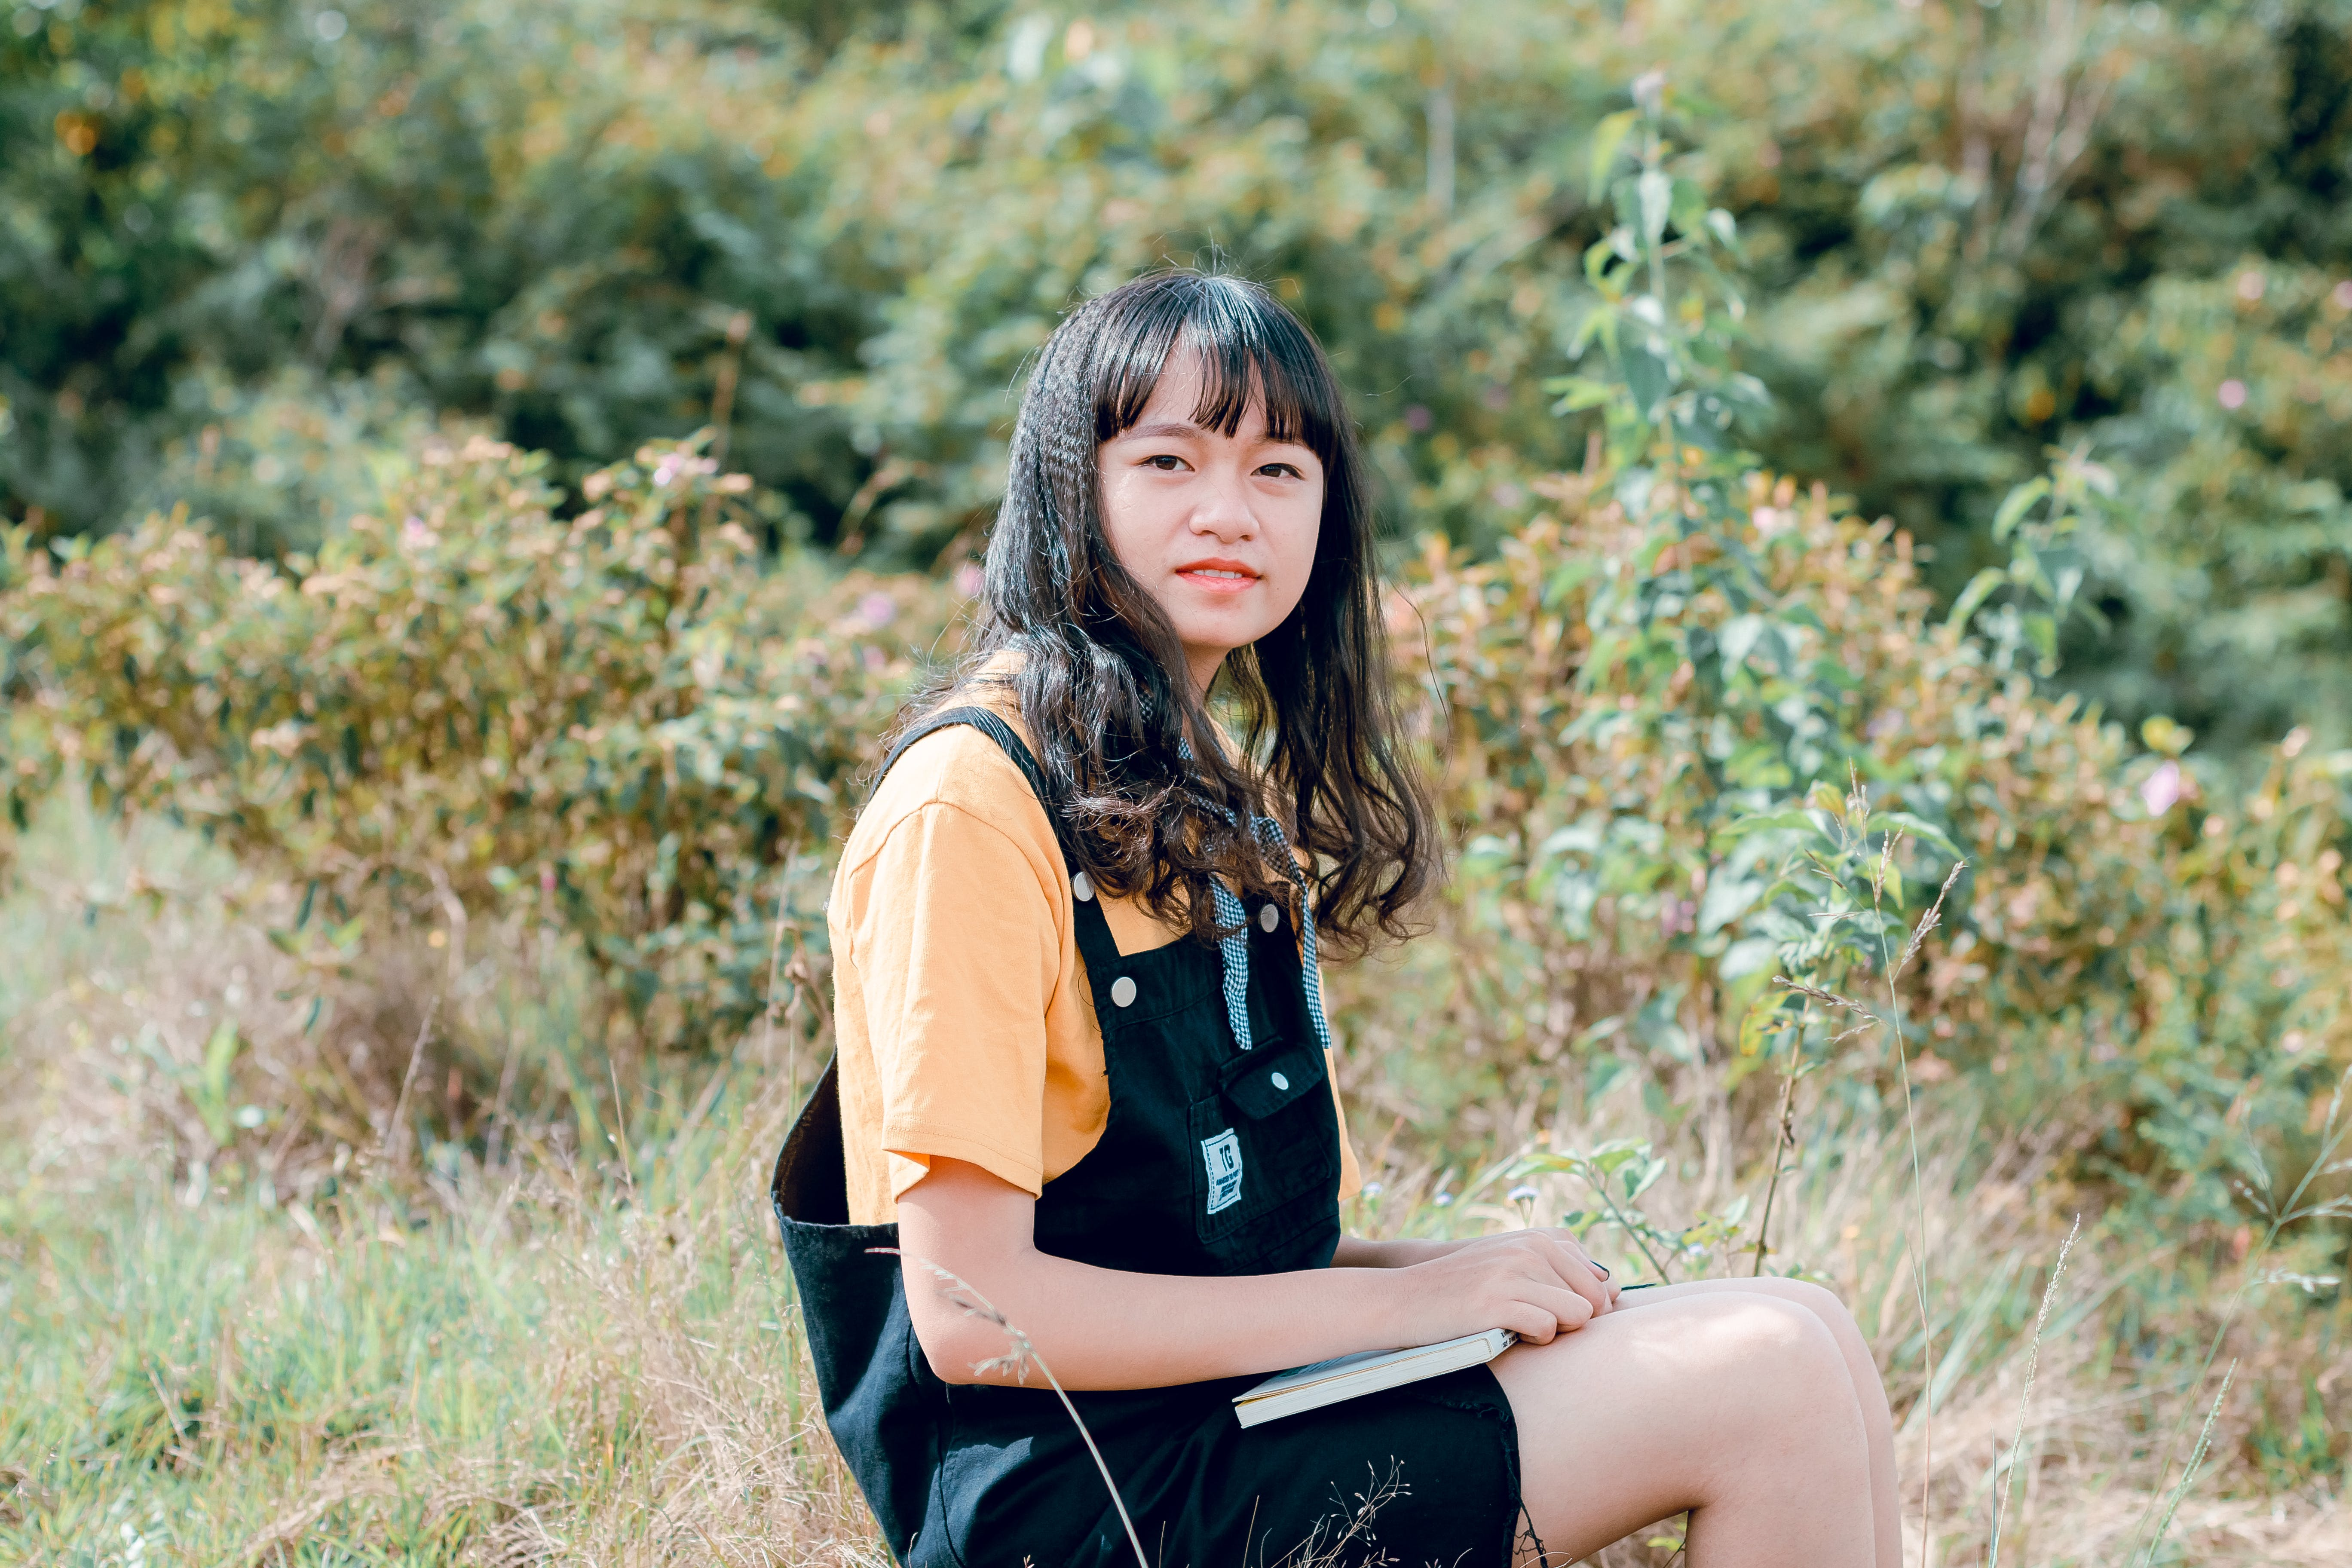 Shallow Focus Photography of Woman in Yellow Shirt and Black Dungaree